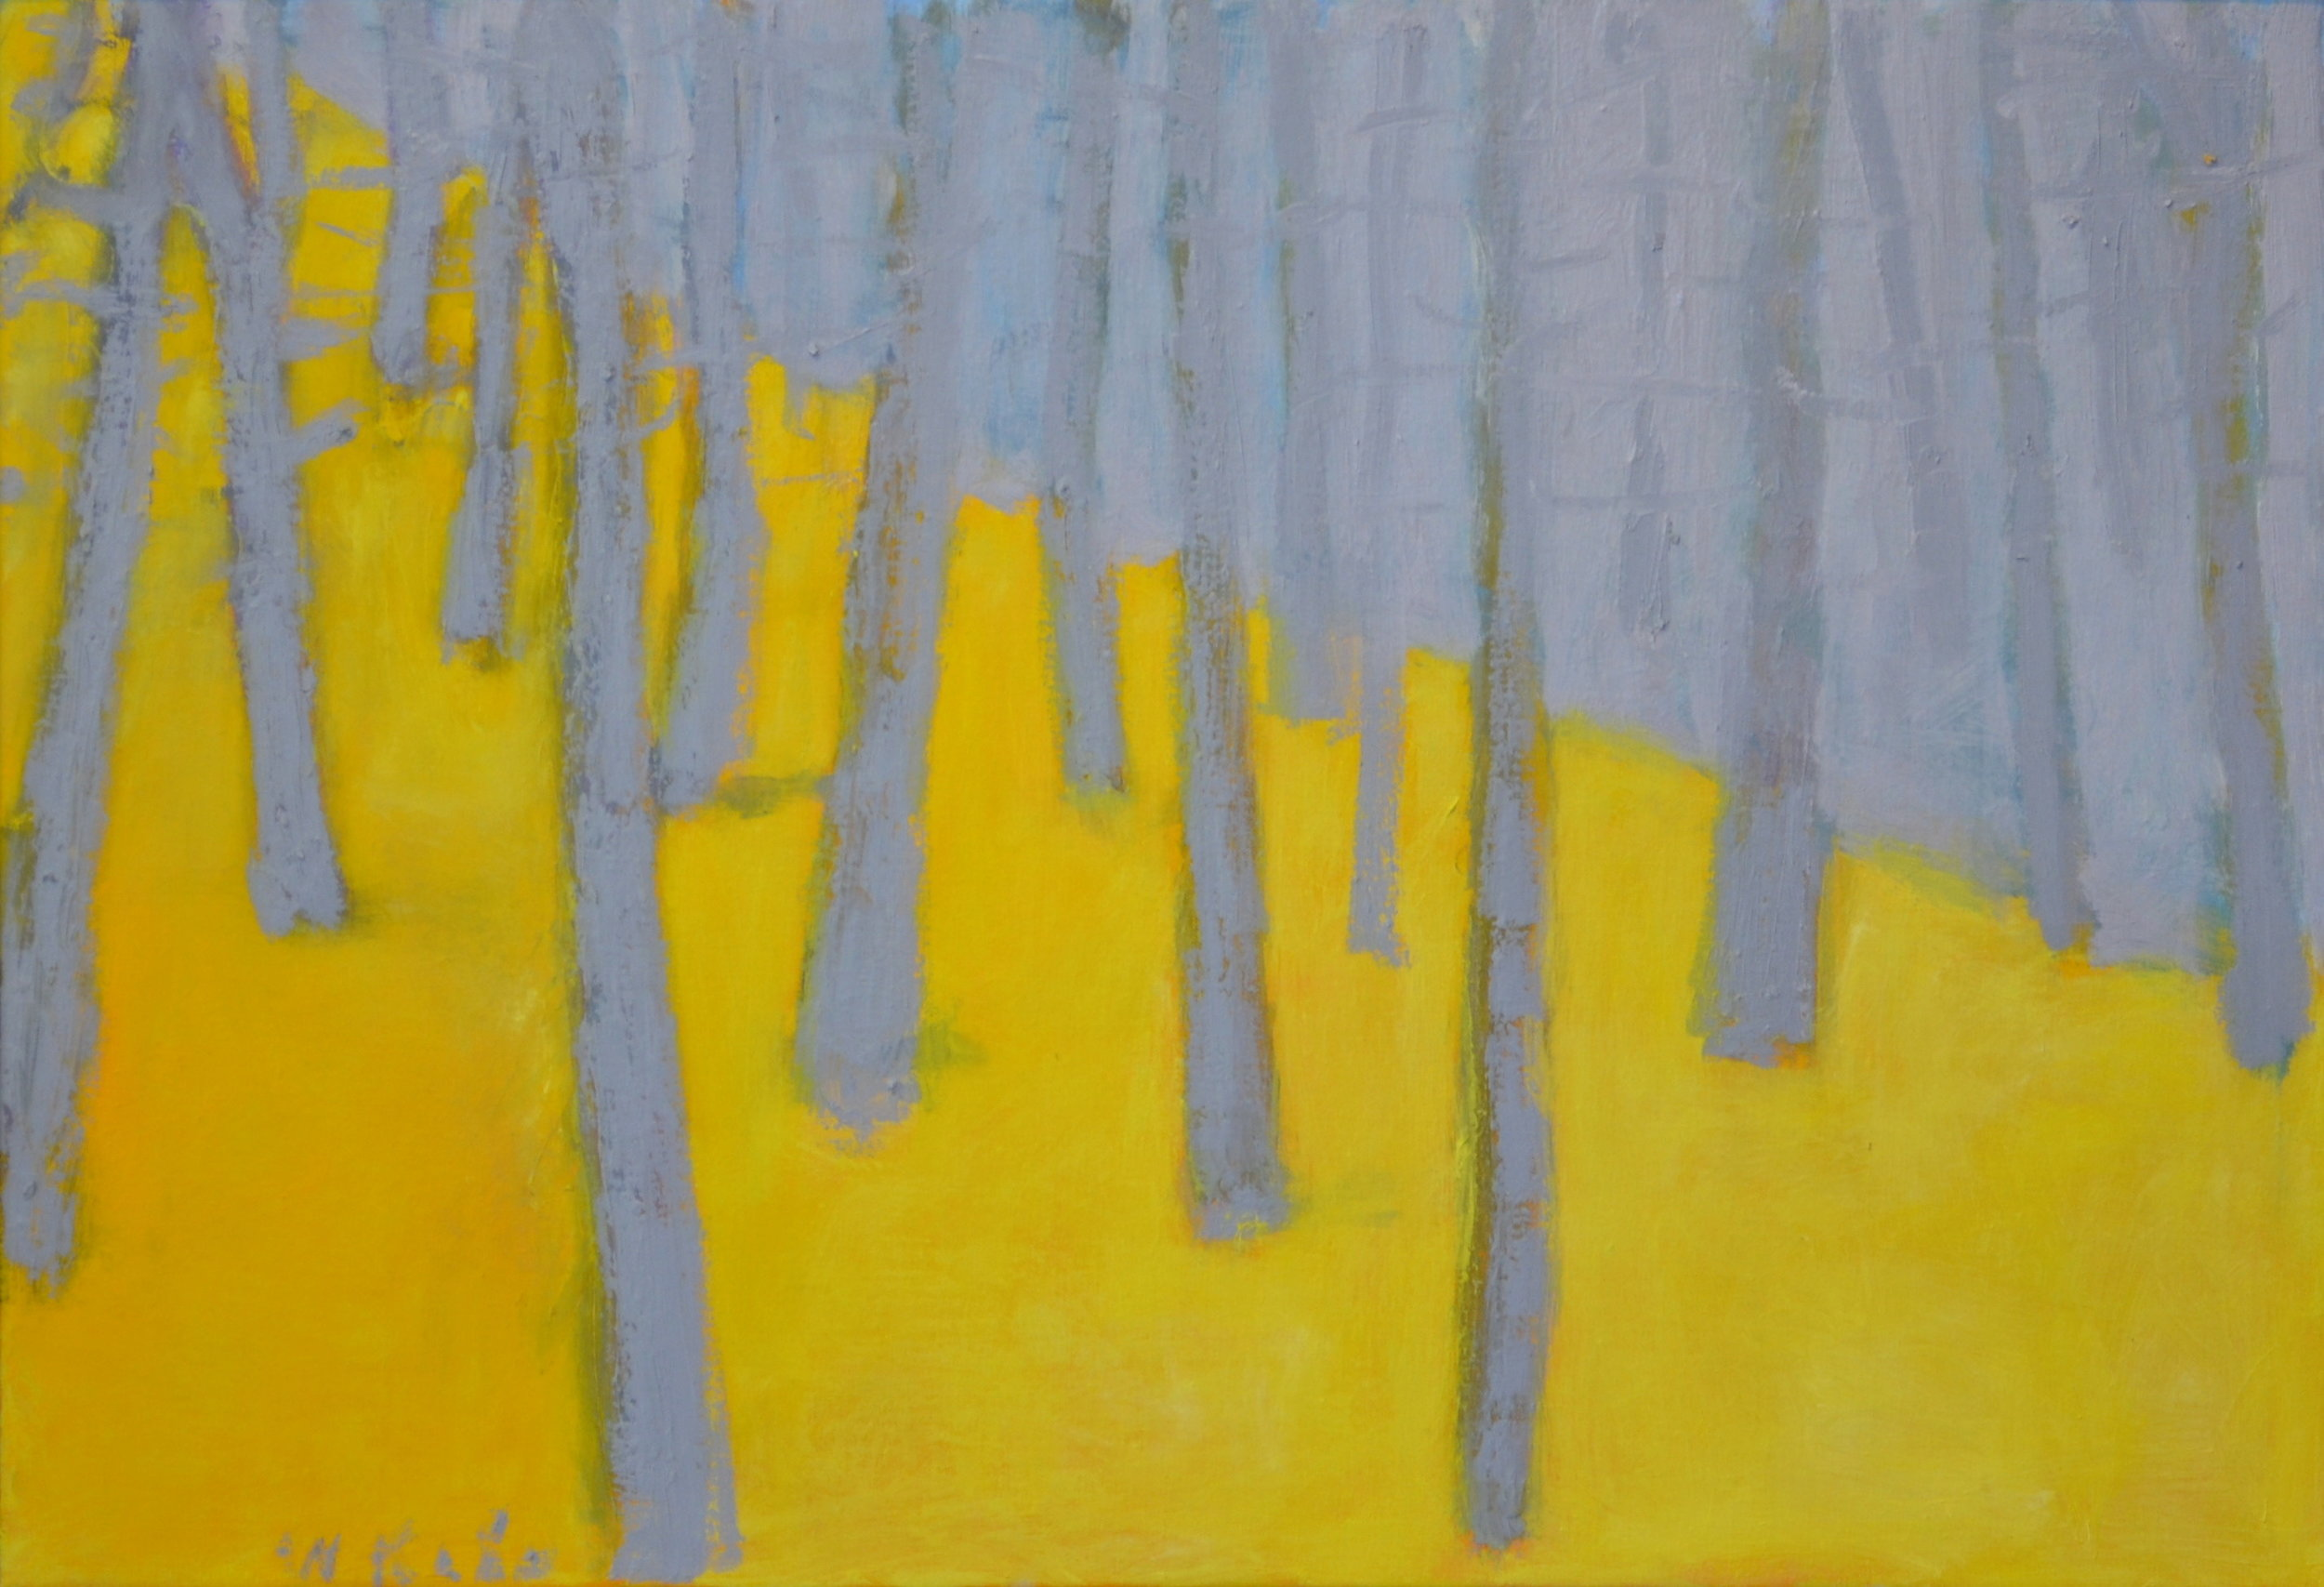 Yellow and Violet-Gray , 2009  Oil on canvas  18 x 26 inches